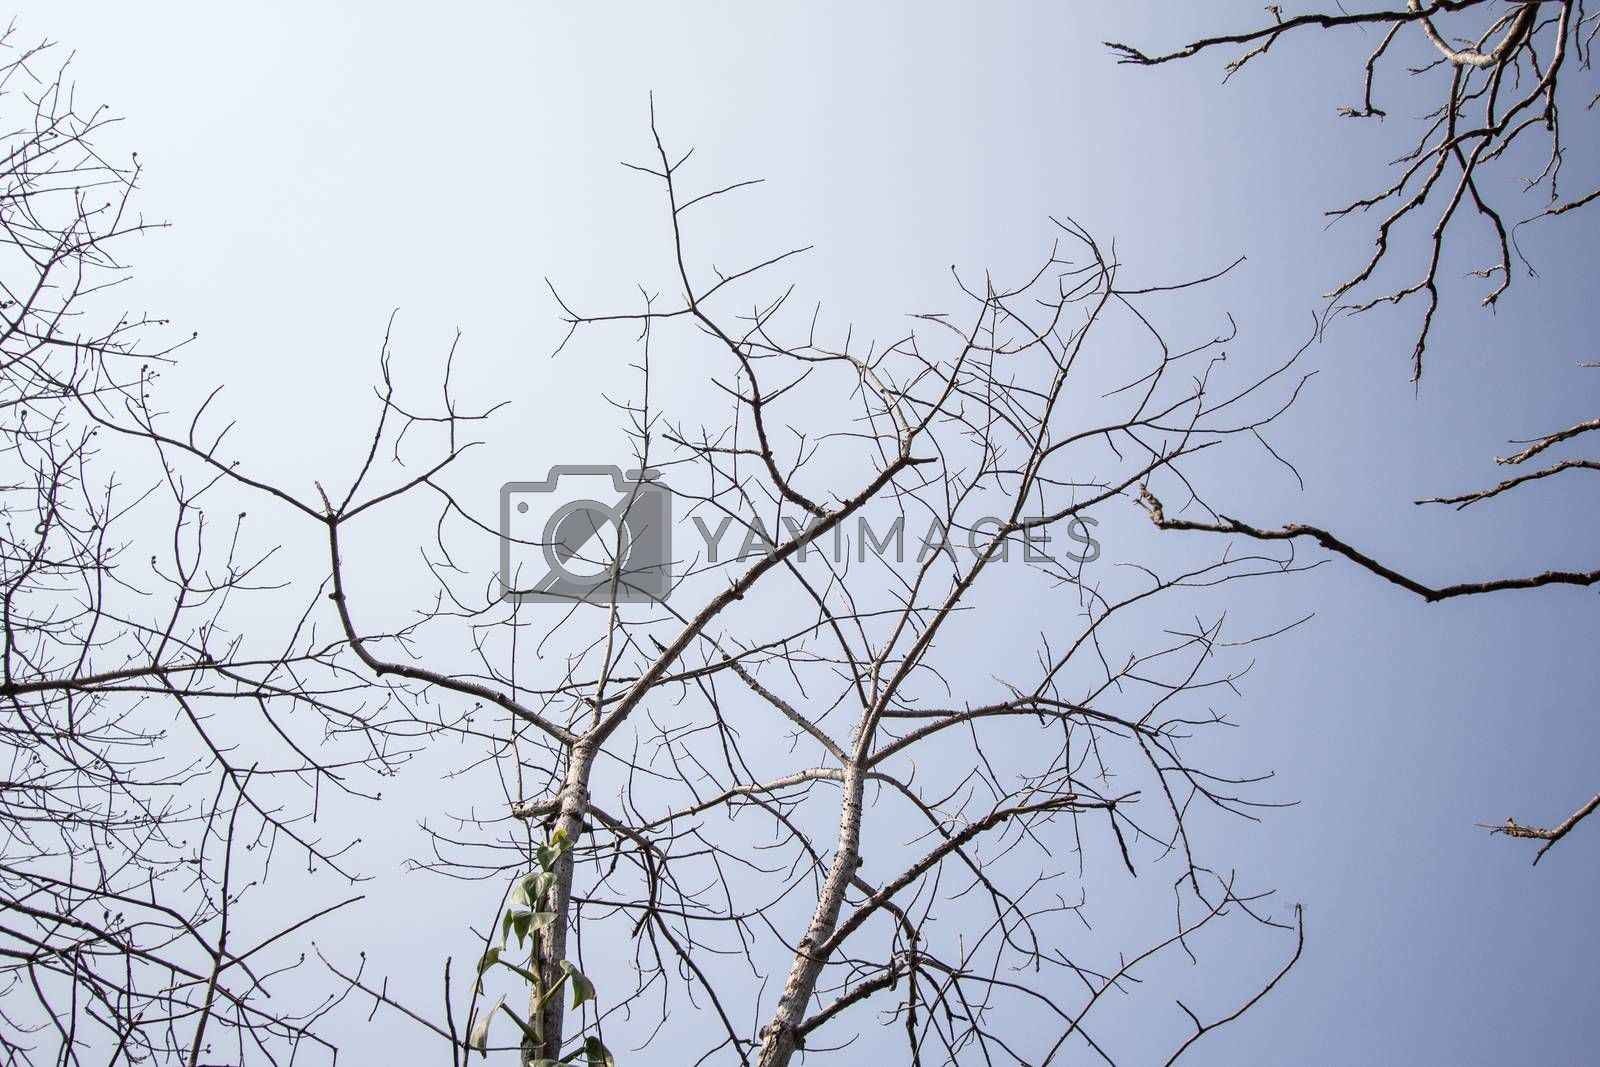 Royalty free image of sky and trees  by kritsada1992